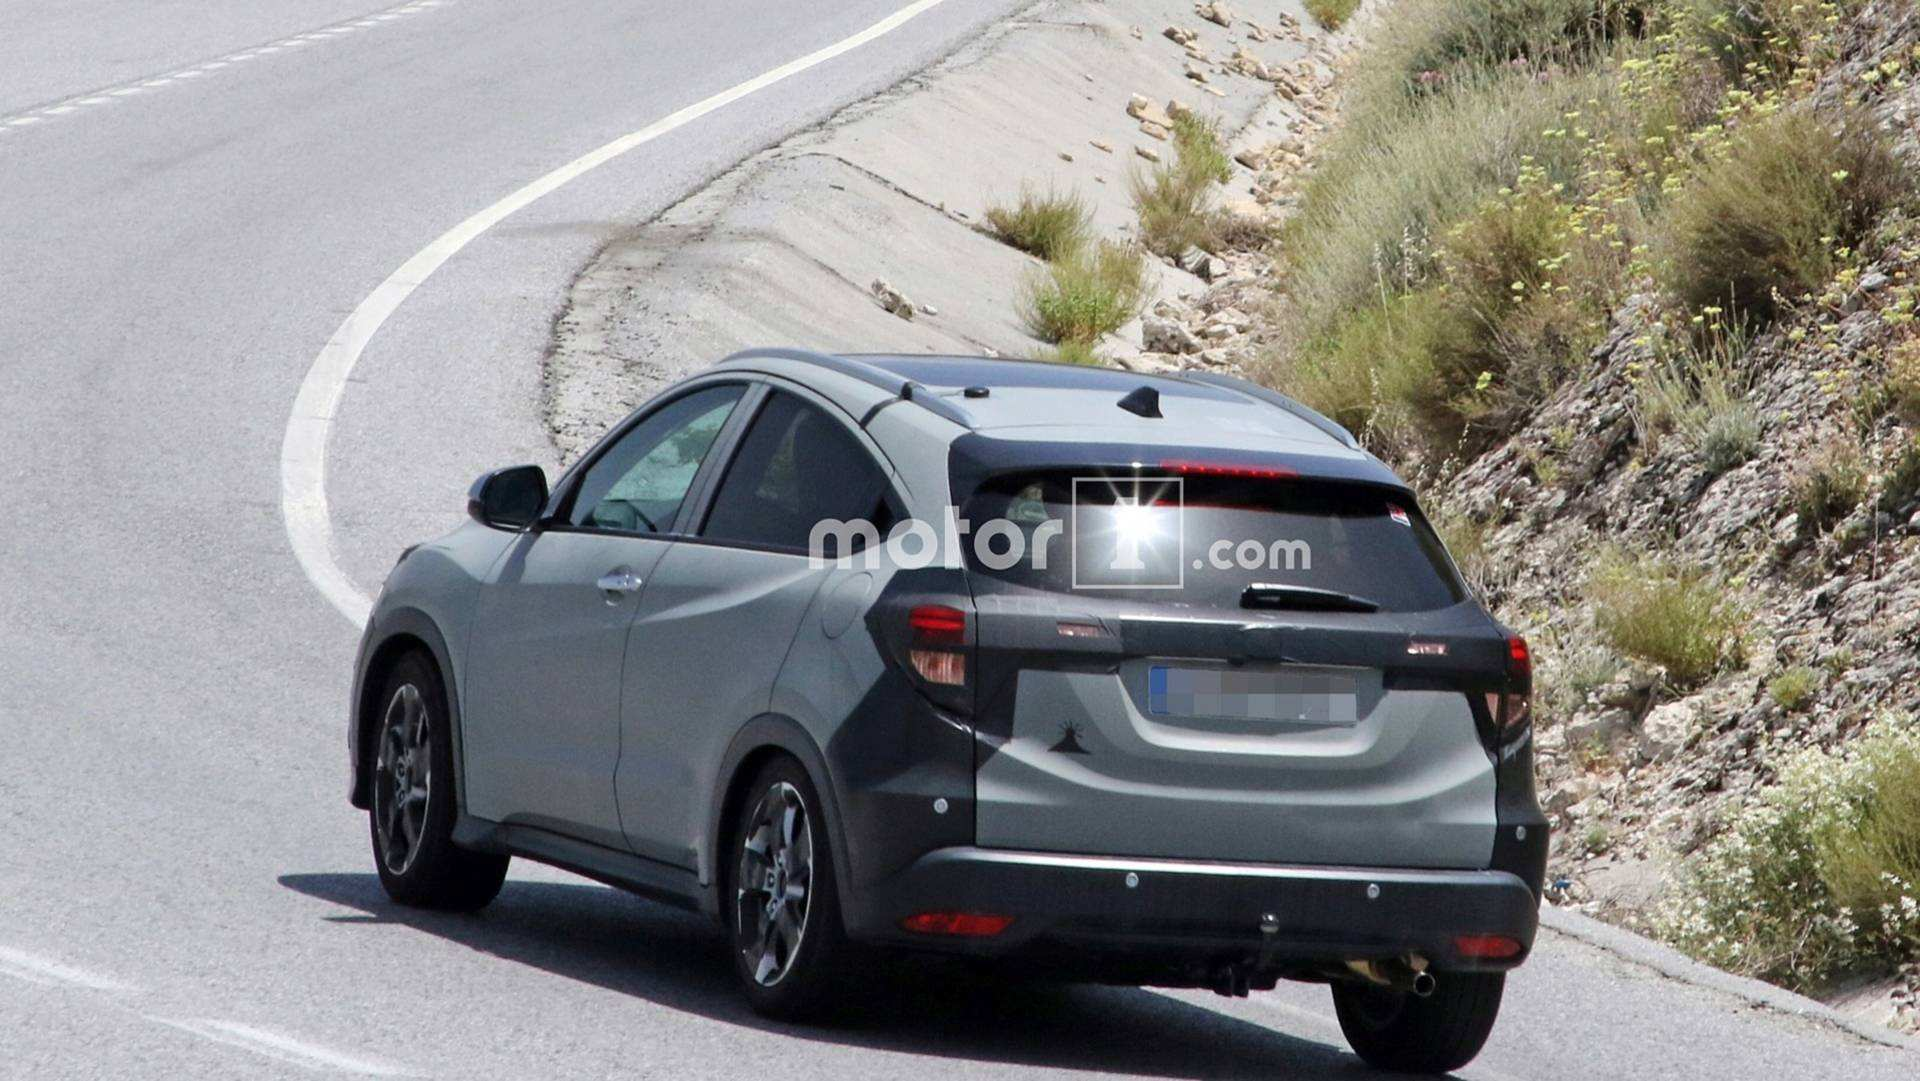 34 Best Review Honda Hrv 2020 Release Date Usa Prices by Honda Hrv 2020 Release Date Usa